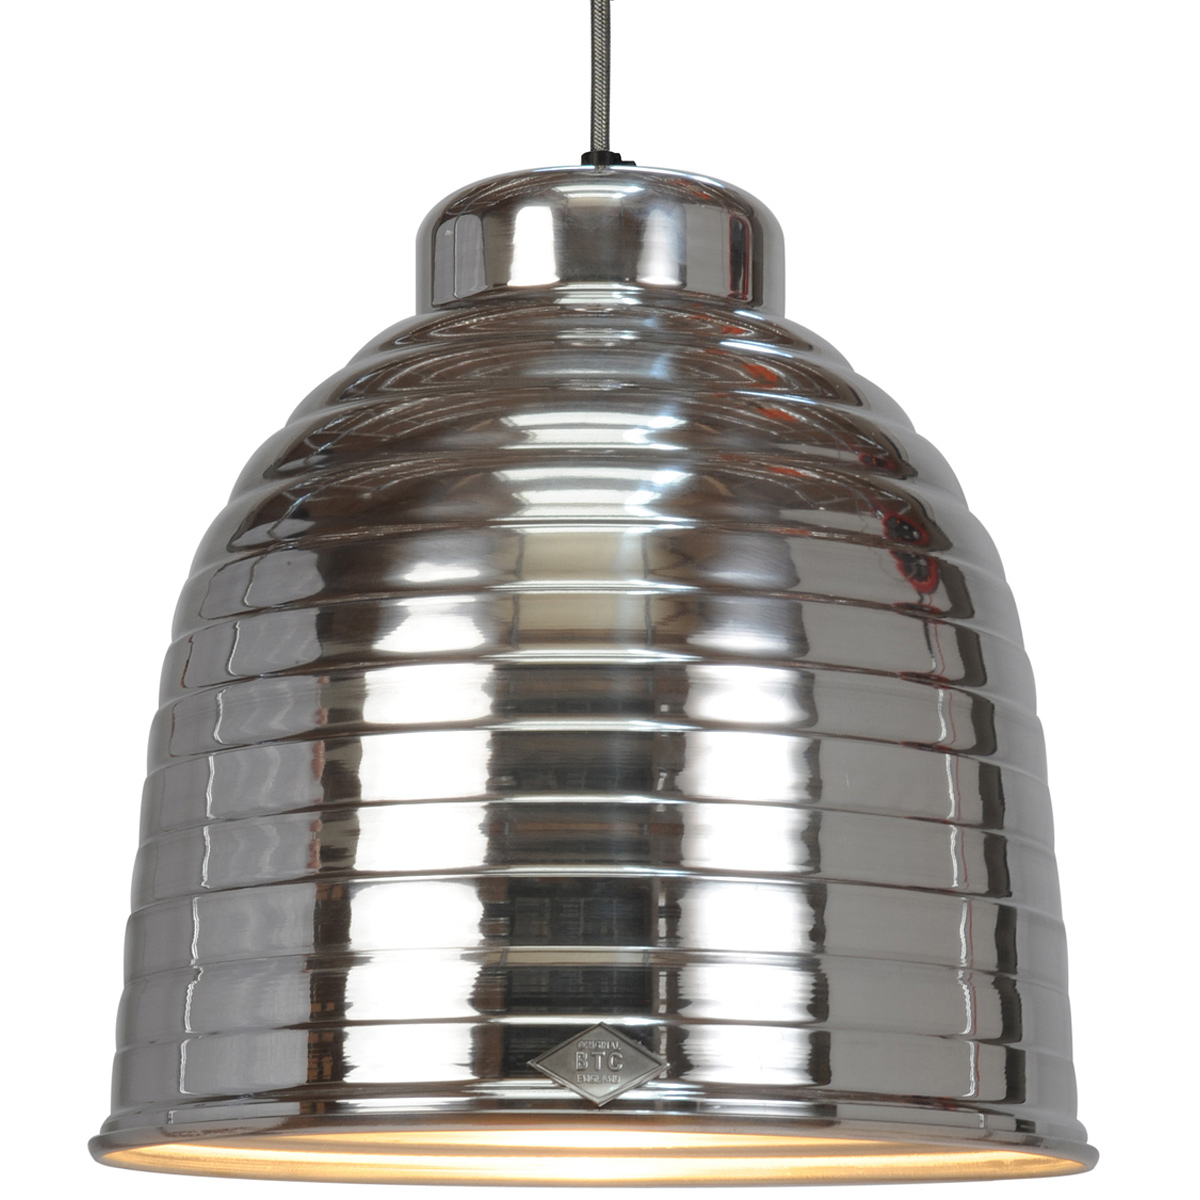 Industrial Style Lampen Voluminous Pendulum Lamp In Industrial Style Ripple Casa